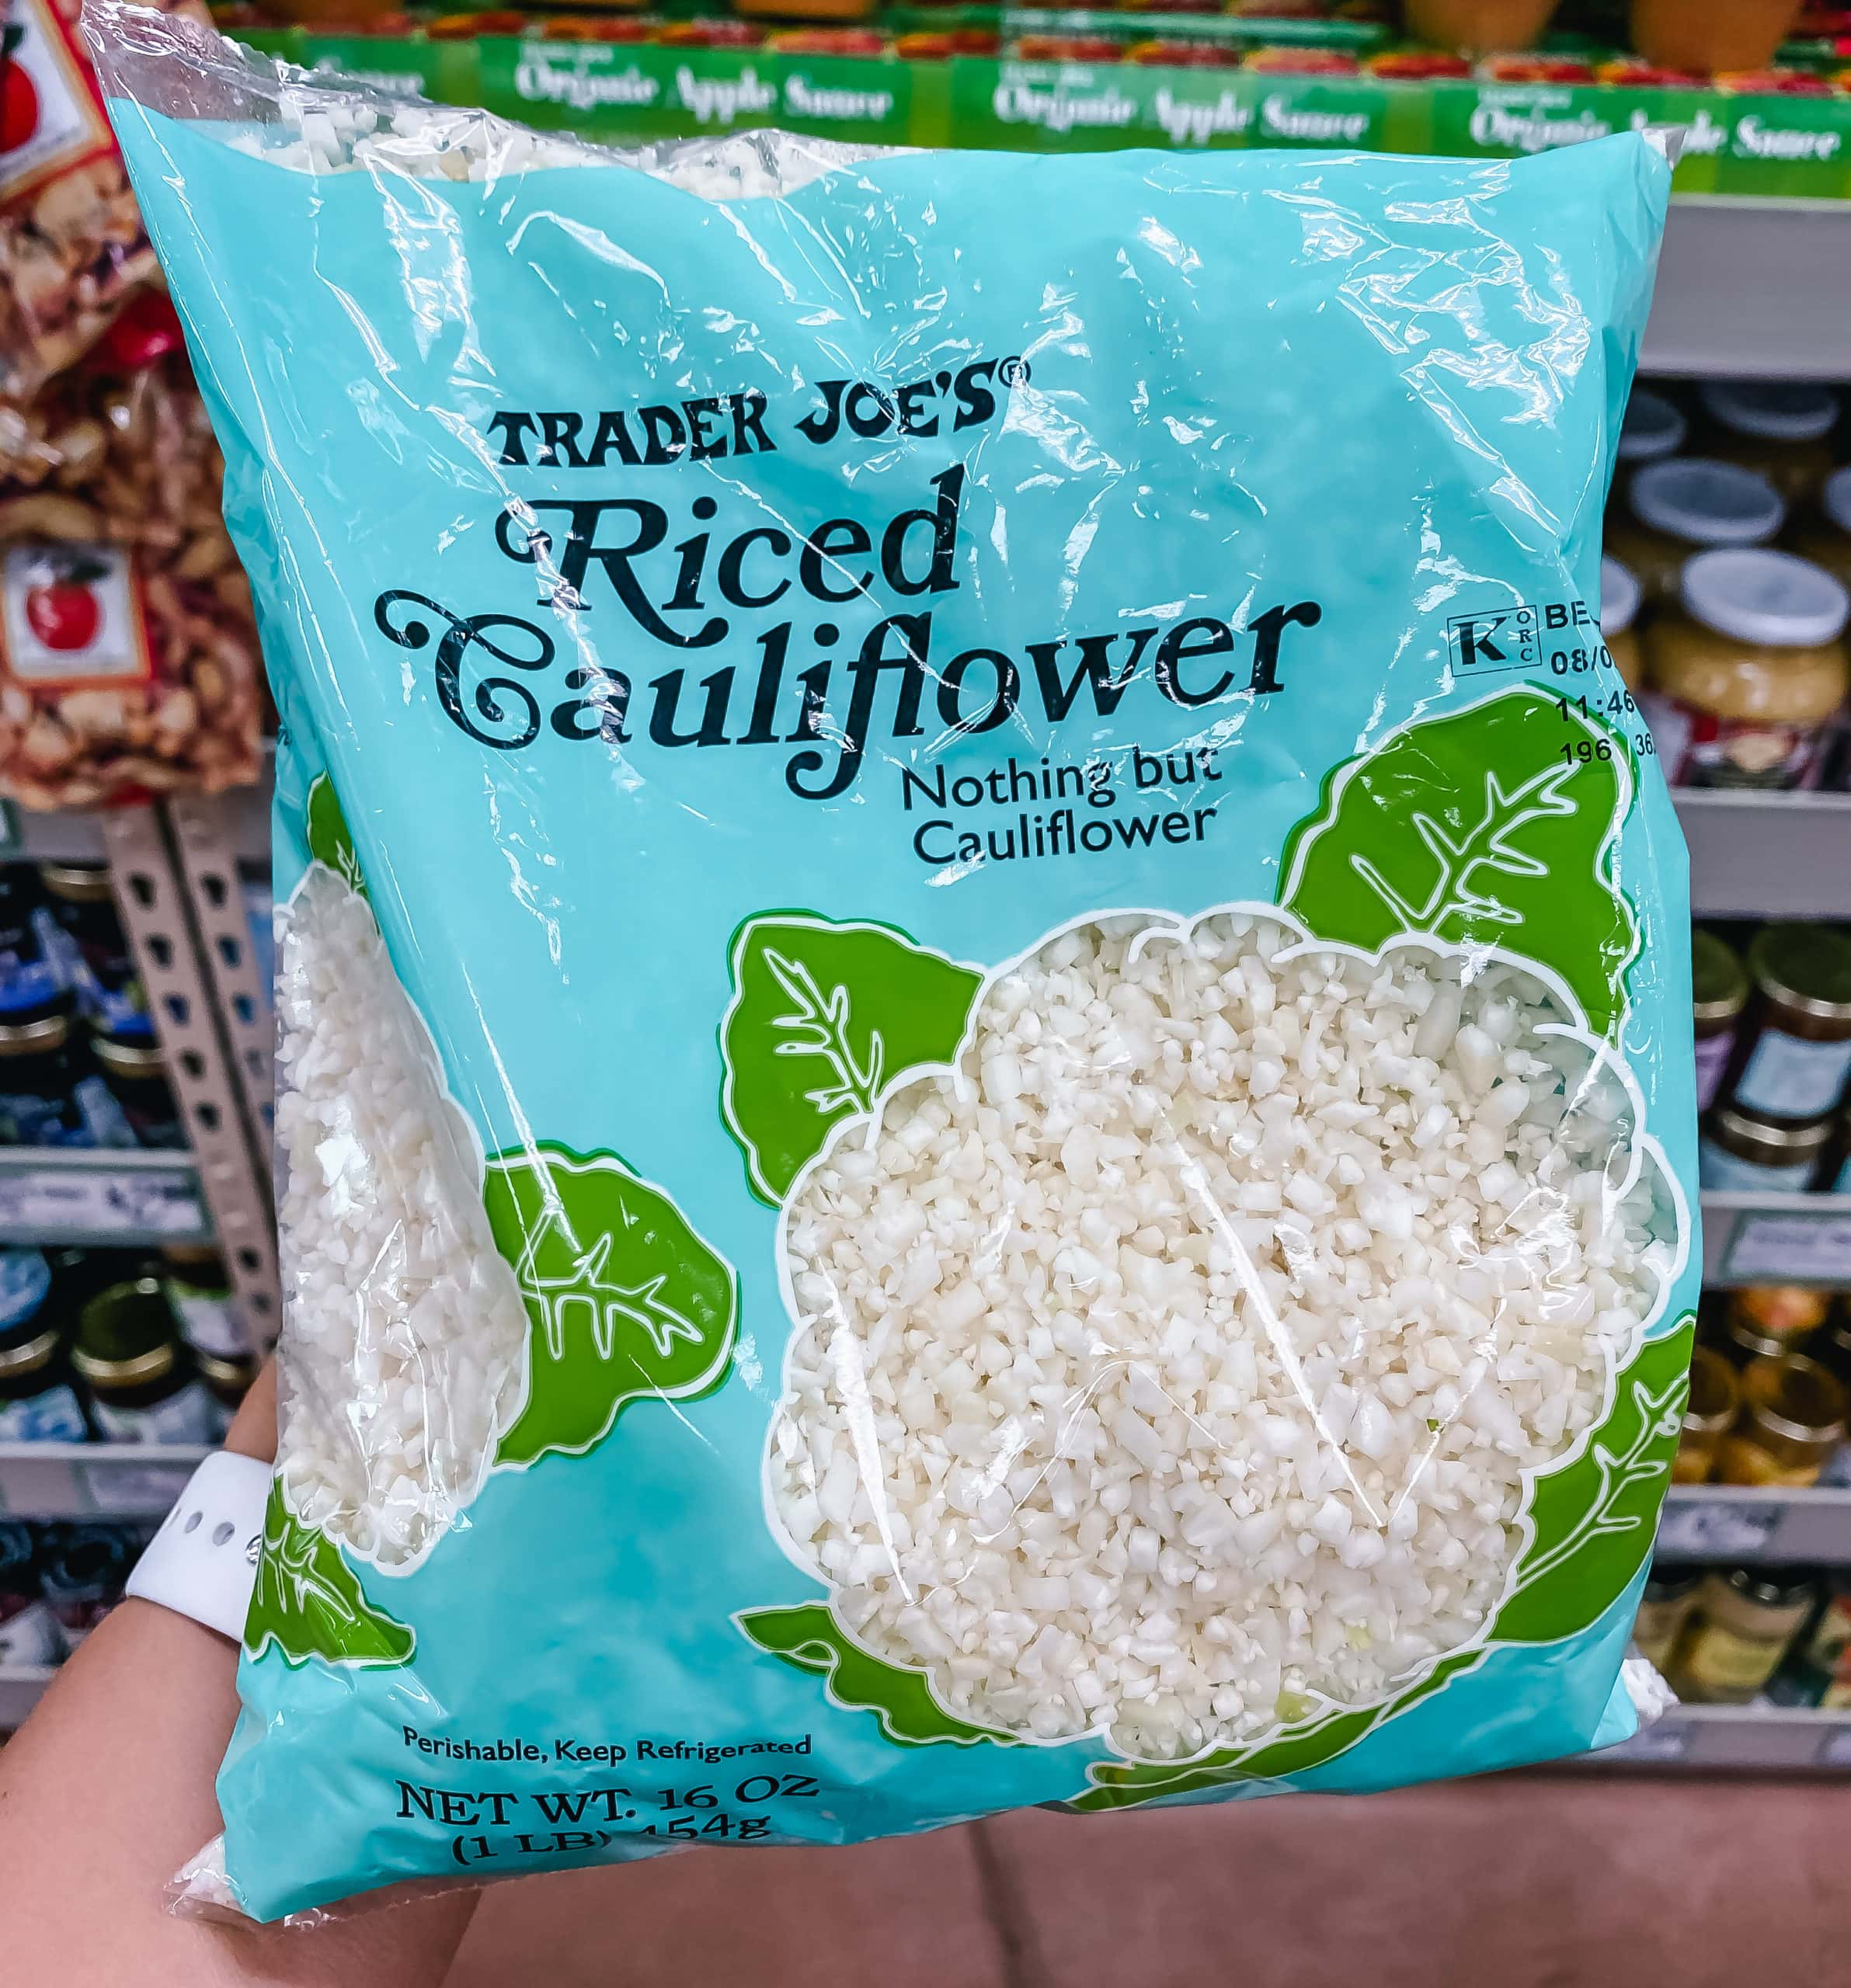 Riced Cauliflower from Trader Joe's. Best Things to Buy from Trader Joe's.